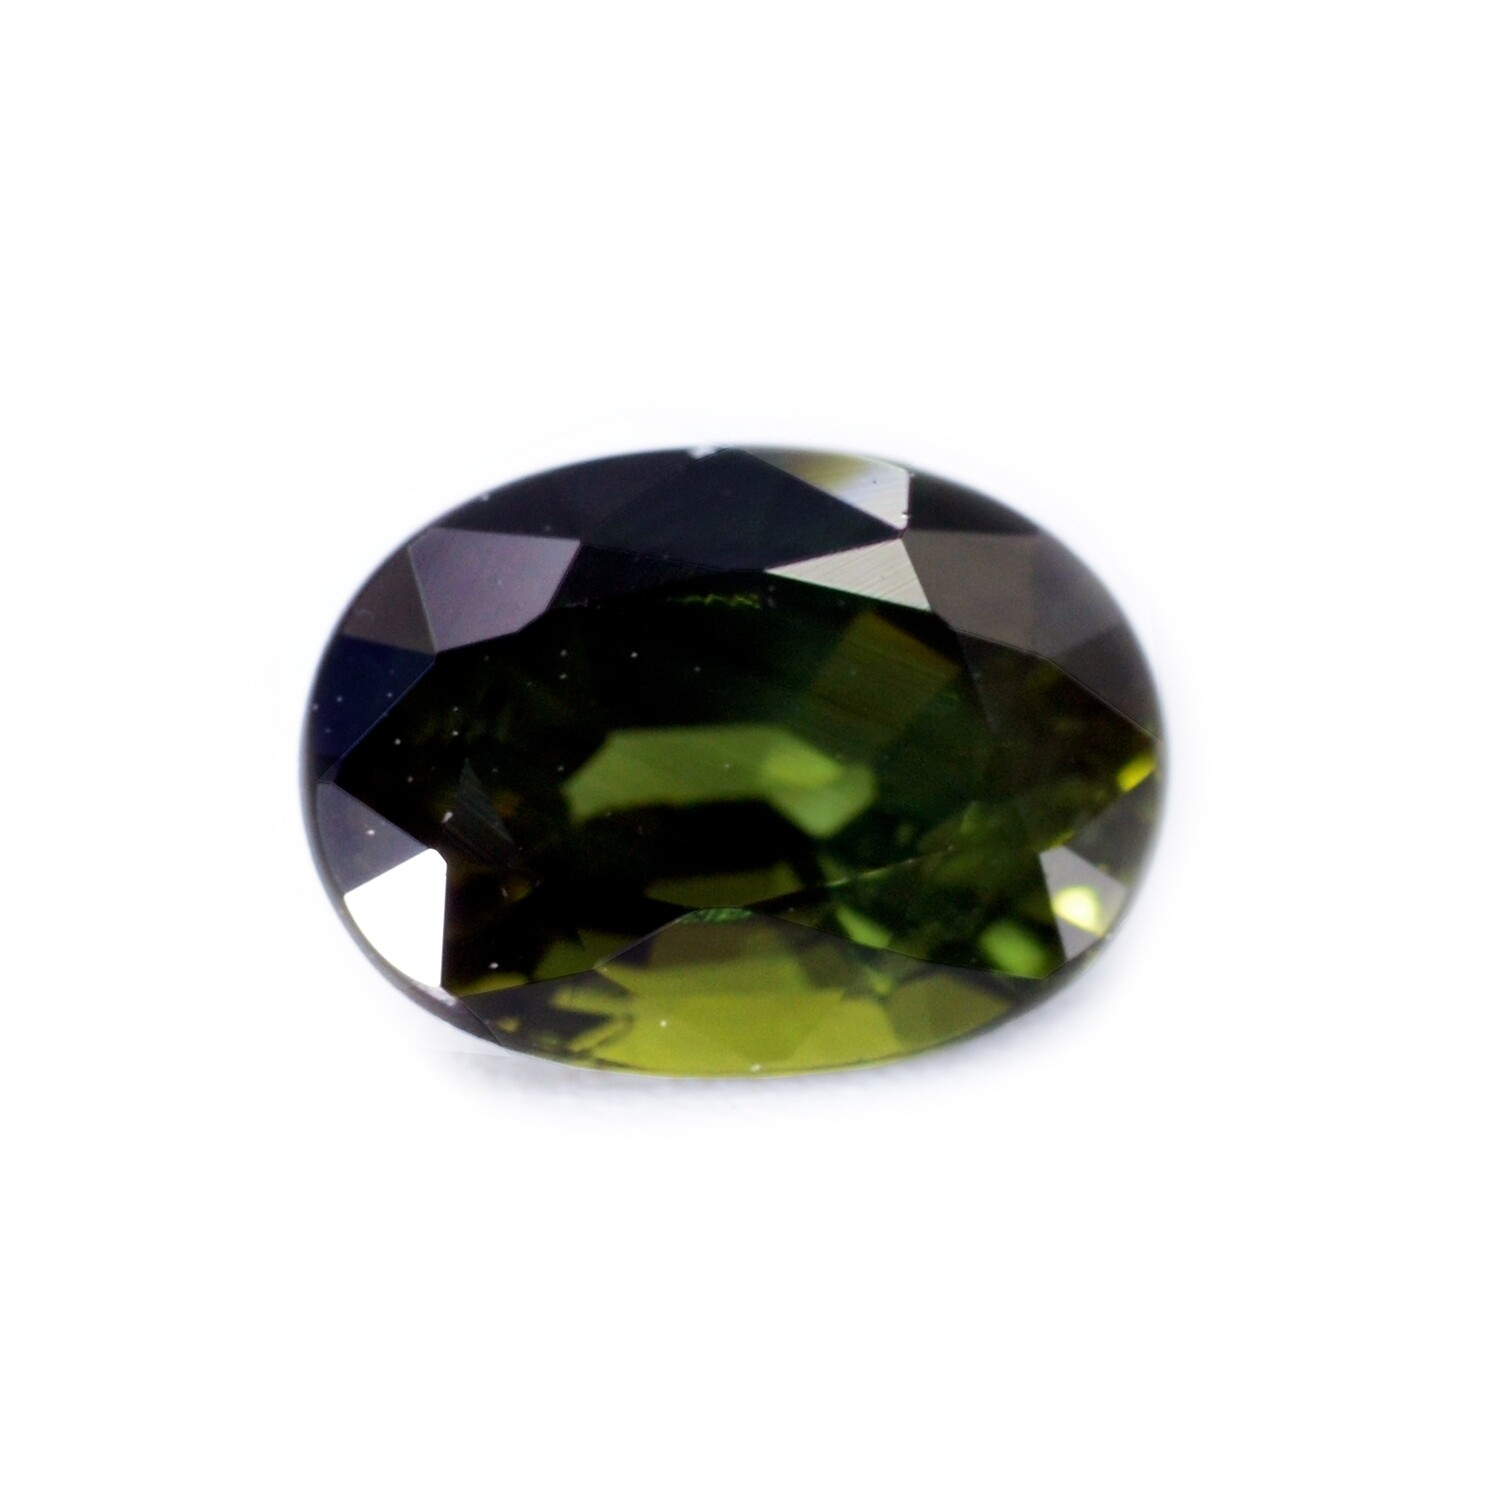 Green Sapphire - 1.30 carat - Loose Natural Gemstone - Oval